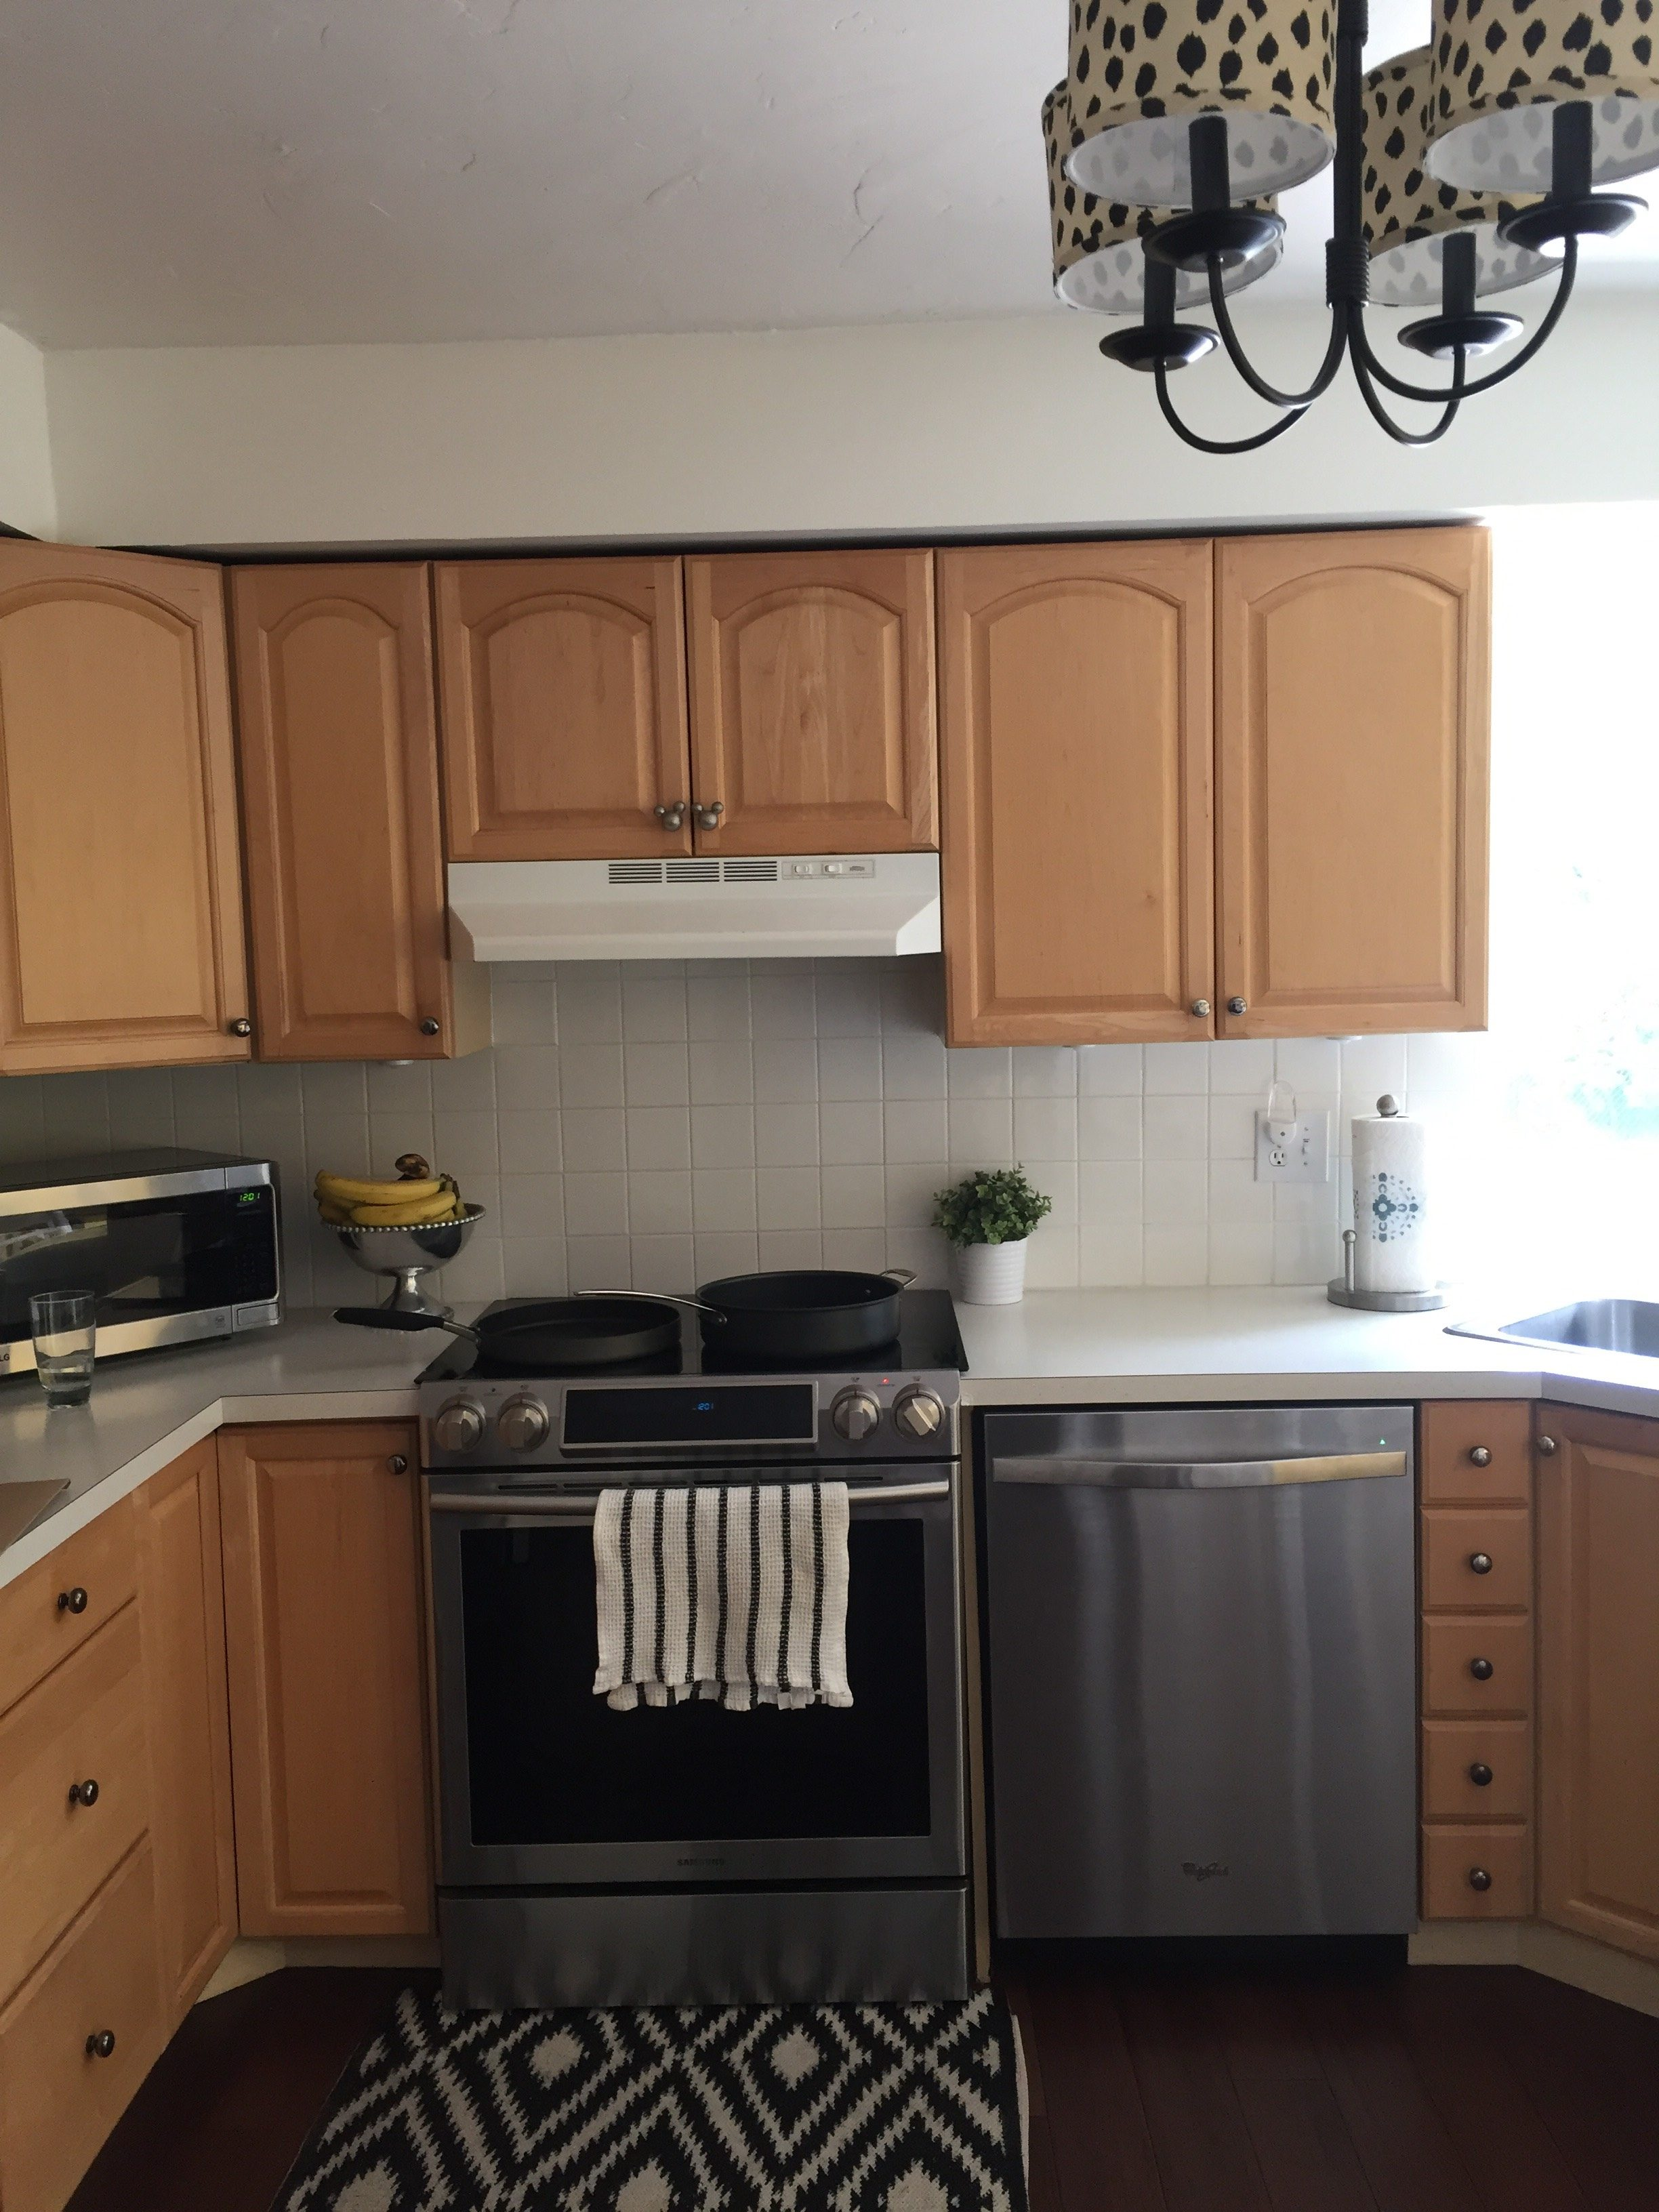 How to Paint Kitchen Cabinets - Happy Home Fairy